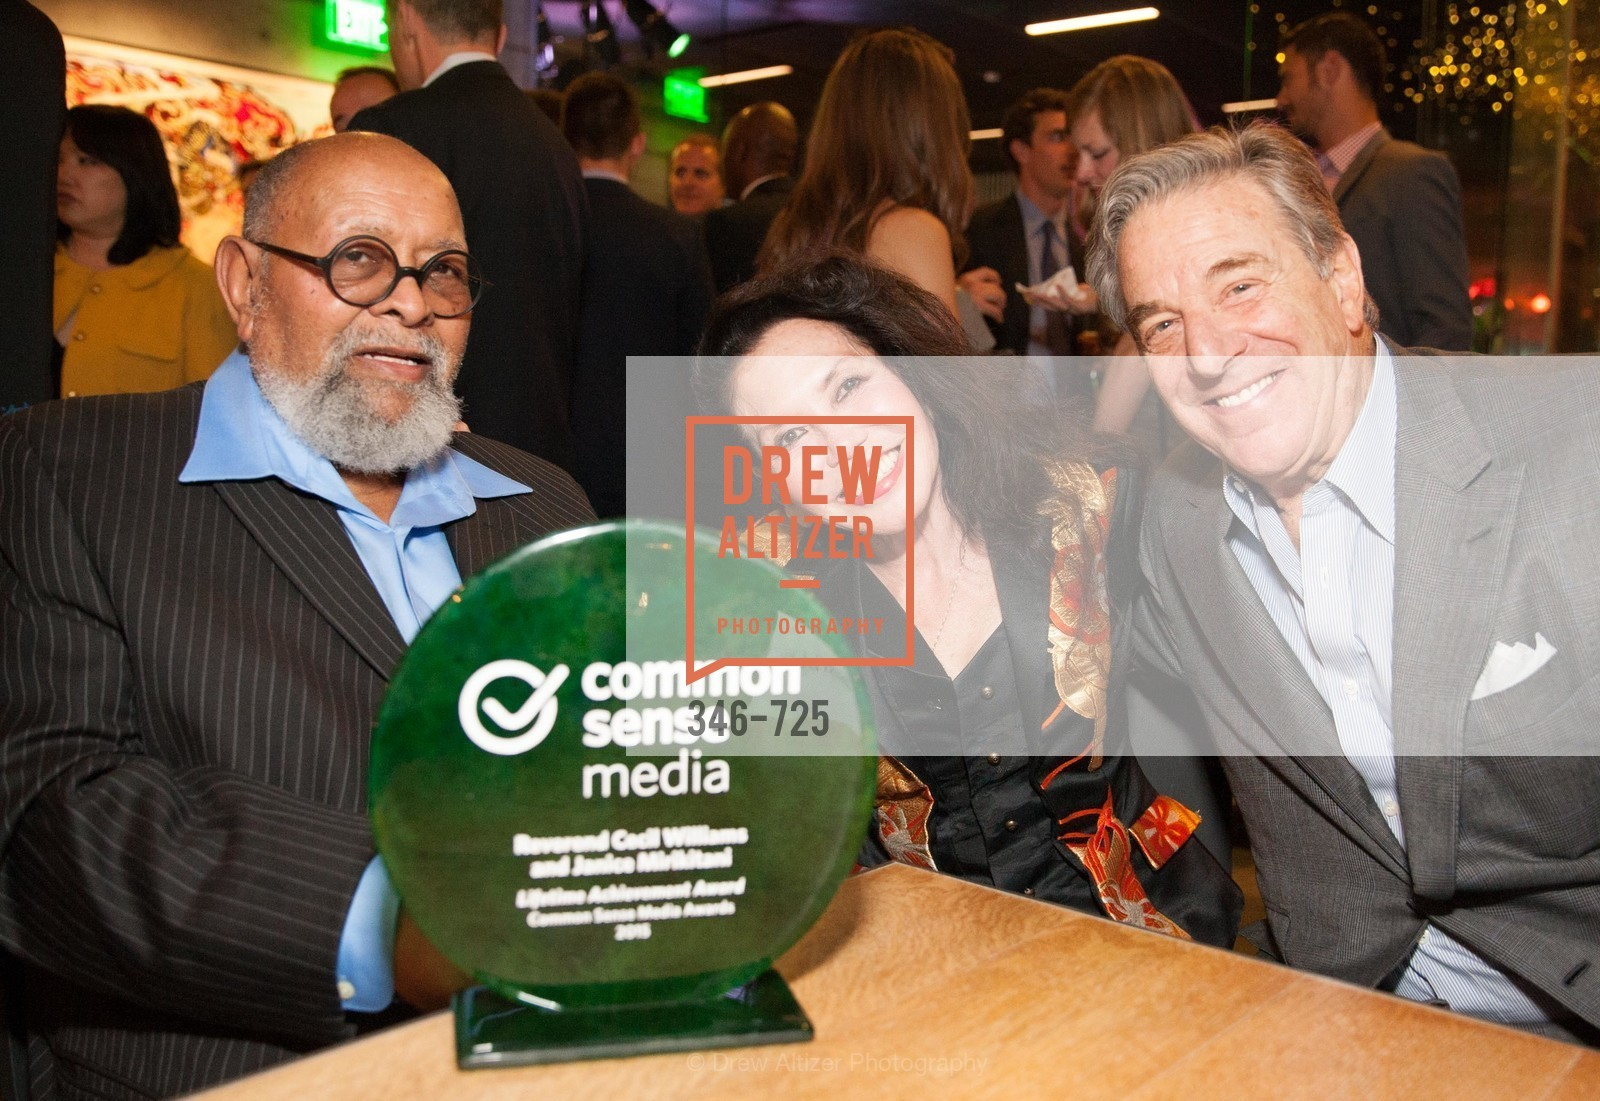 Reverend Cecil Williams, Janice Mirikitani, Paul Pelosi, COMMON SENSE Media Awards 2015, US, May 14th, 2015,Drew Altizer, Drew Altizer Photography, full-service agency, private events, San Francisco photographer, photographer california